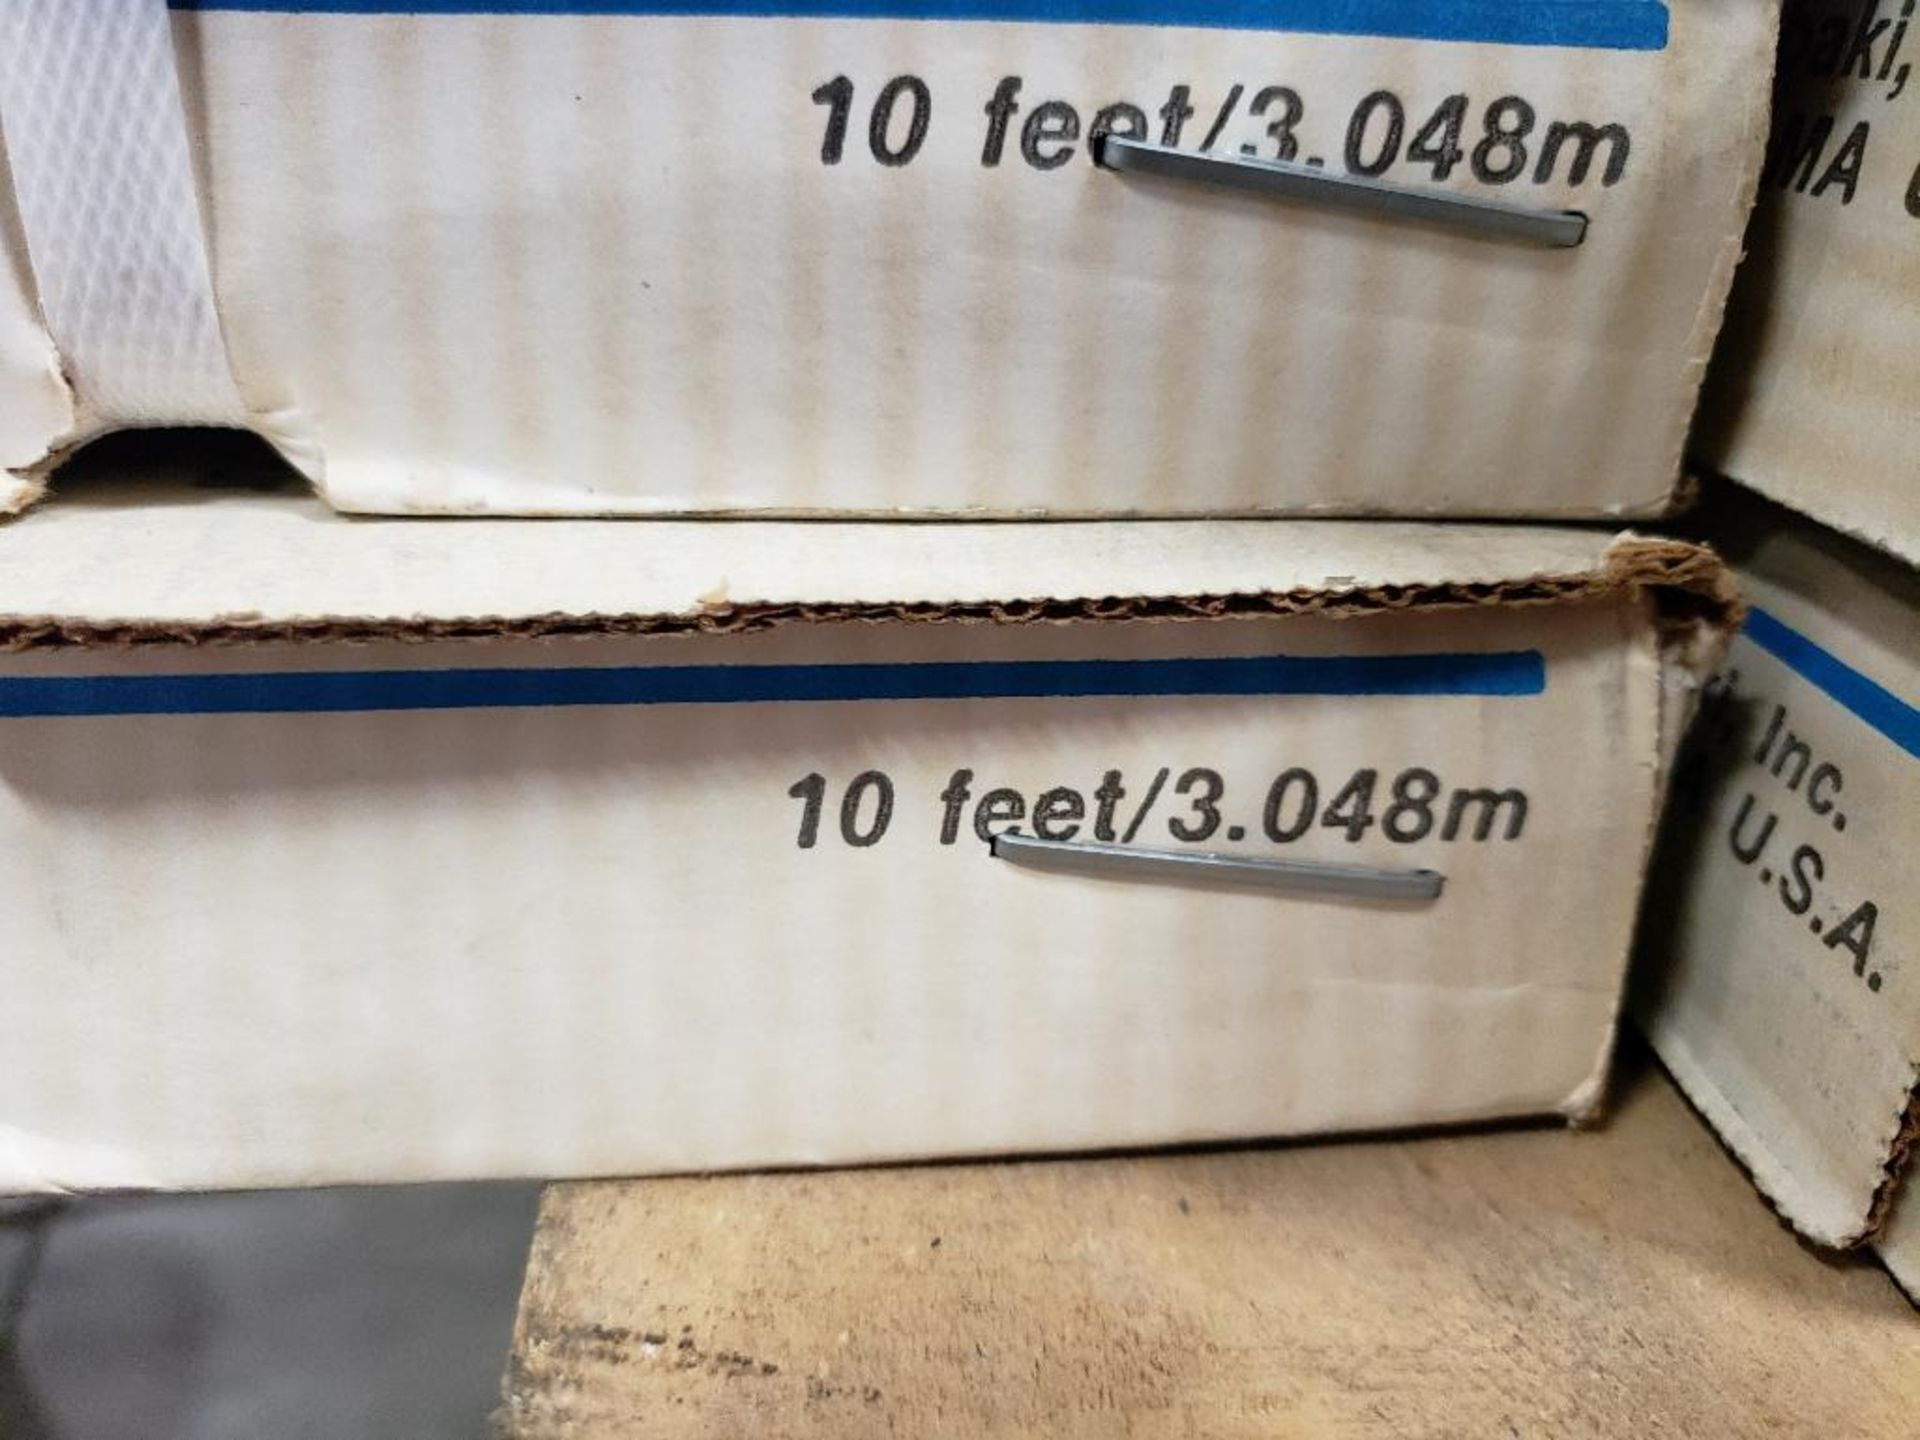 Qty 3 - 10FT US Tsubaki RS100 Roller Chain. New in Box. - Image 3 of 3